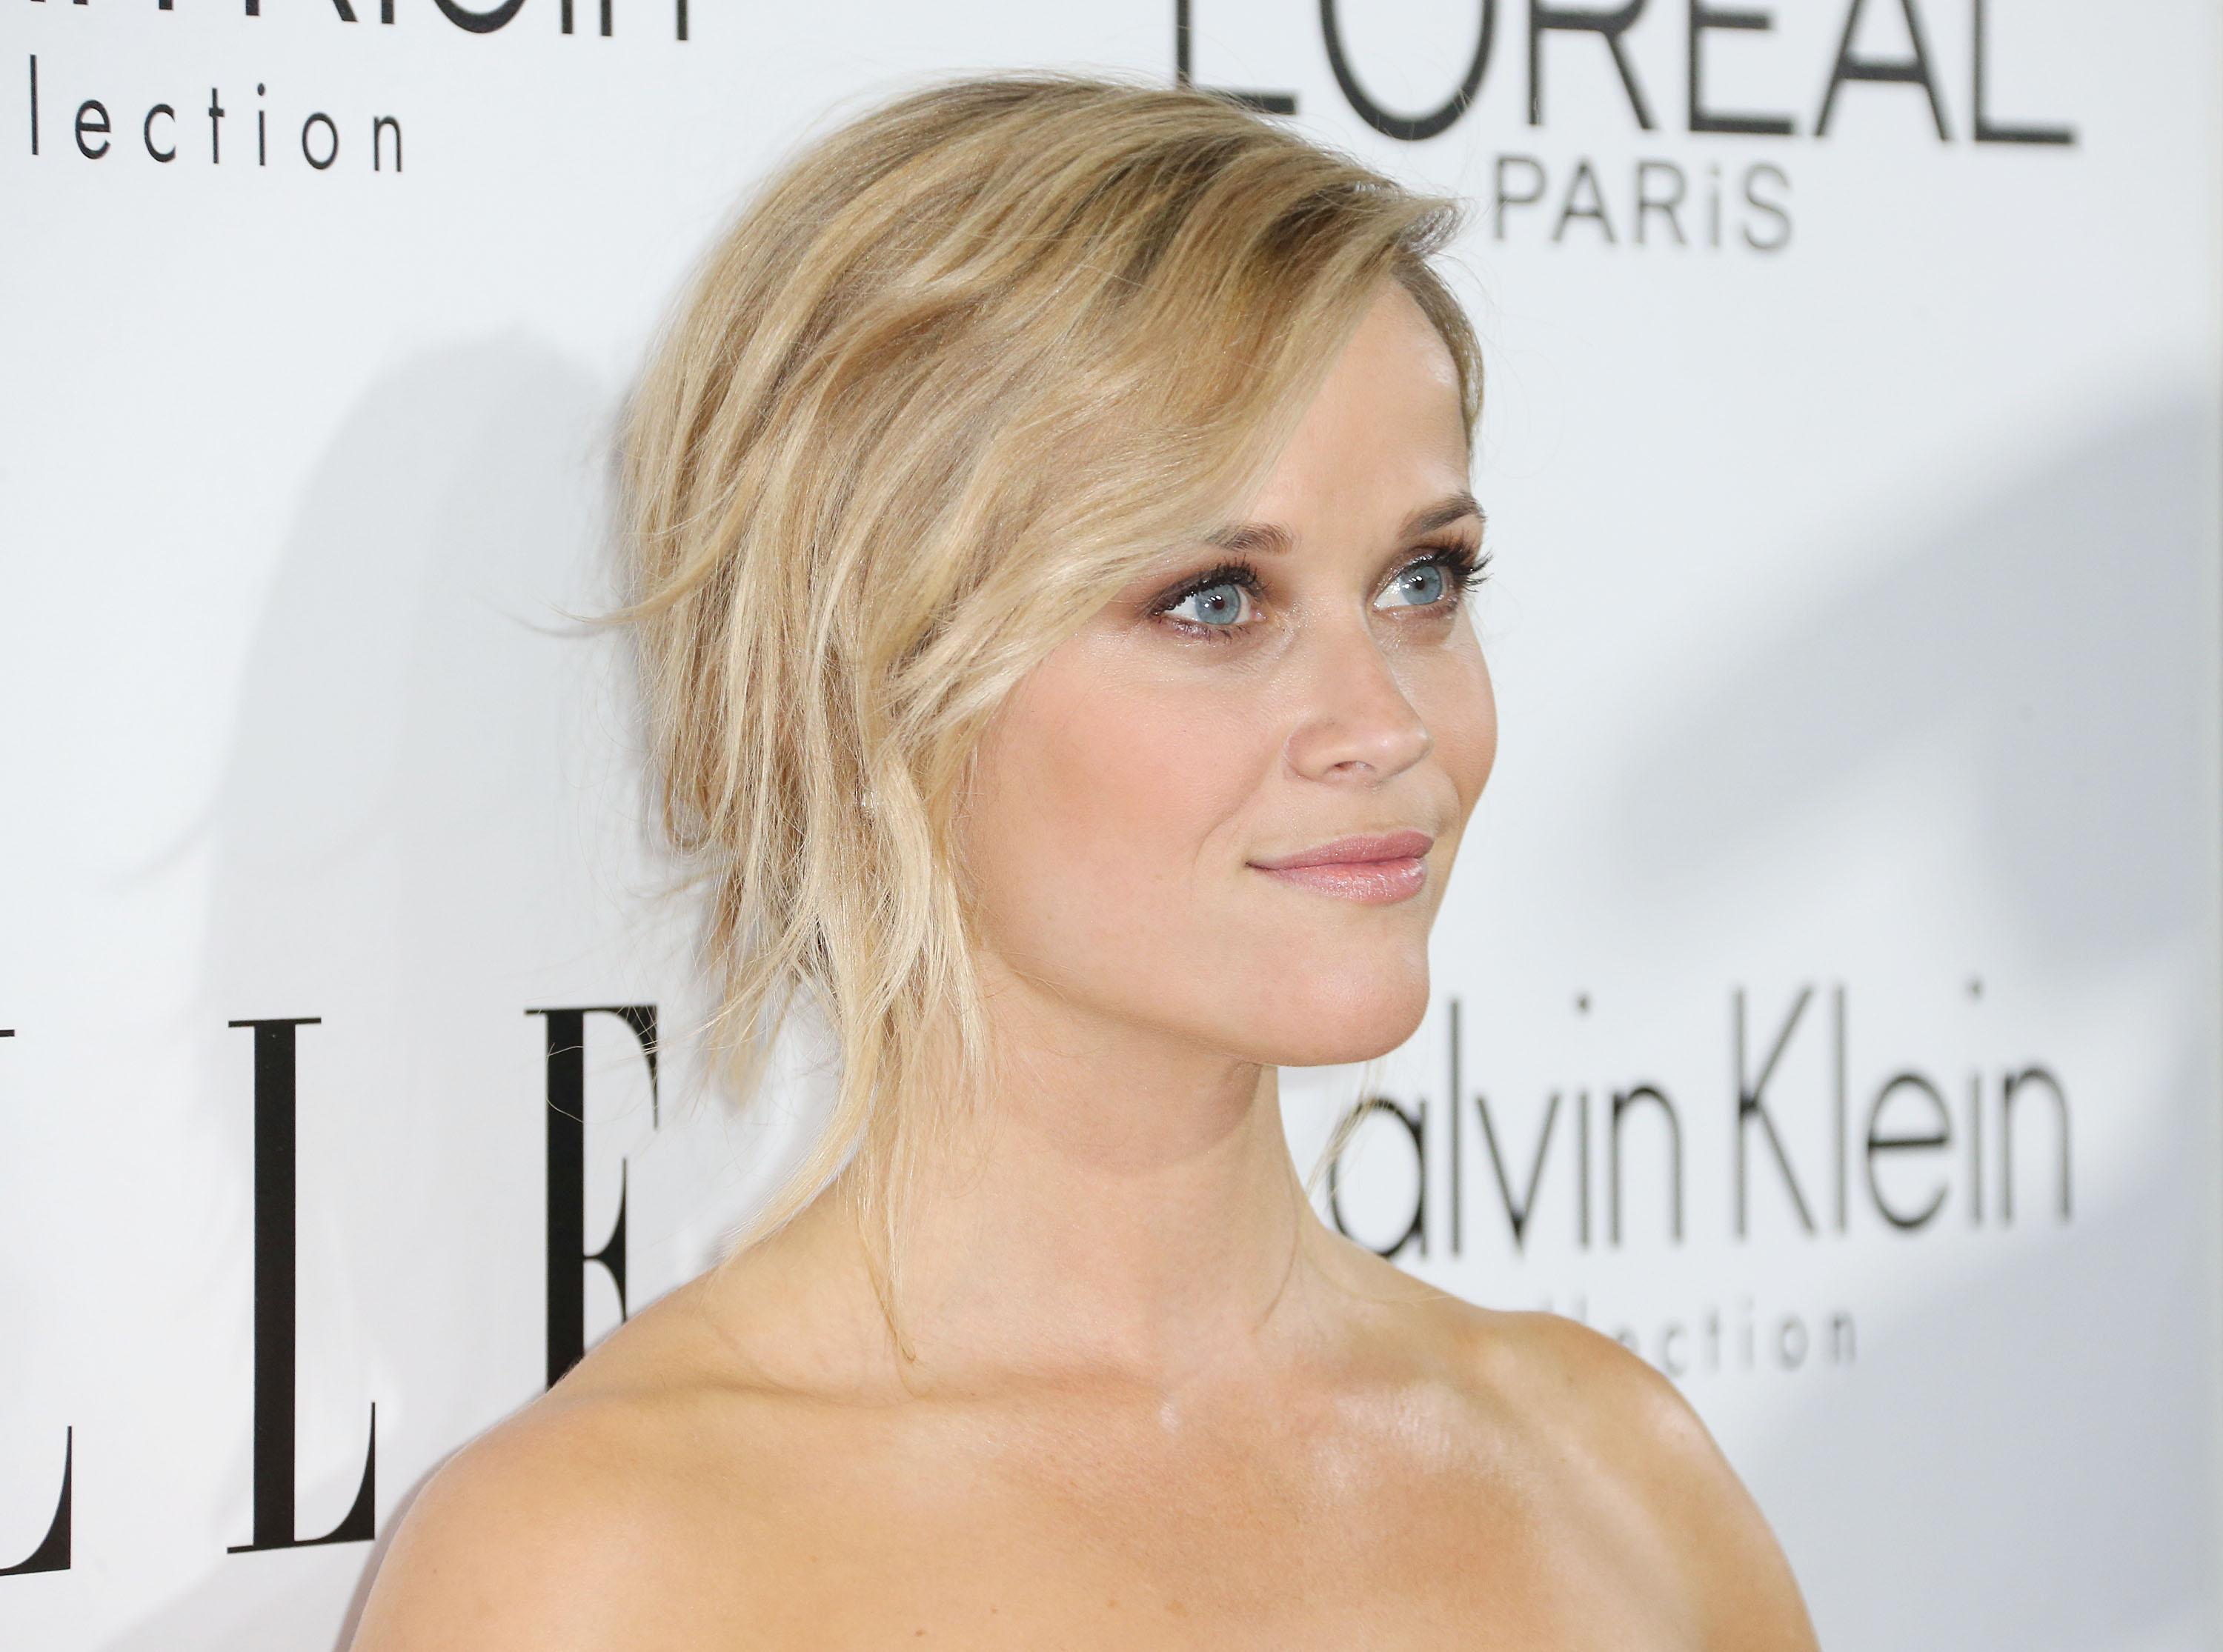 Reese Witherspoon Gets A Lob We Want To Print Out These Pics And Copy Her Stat